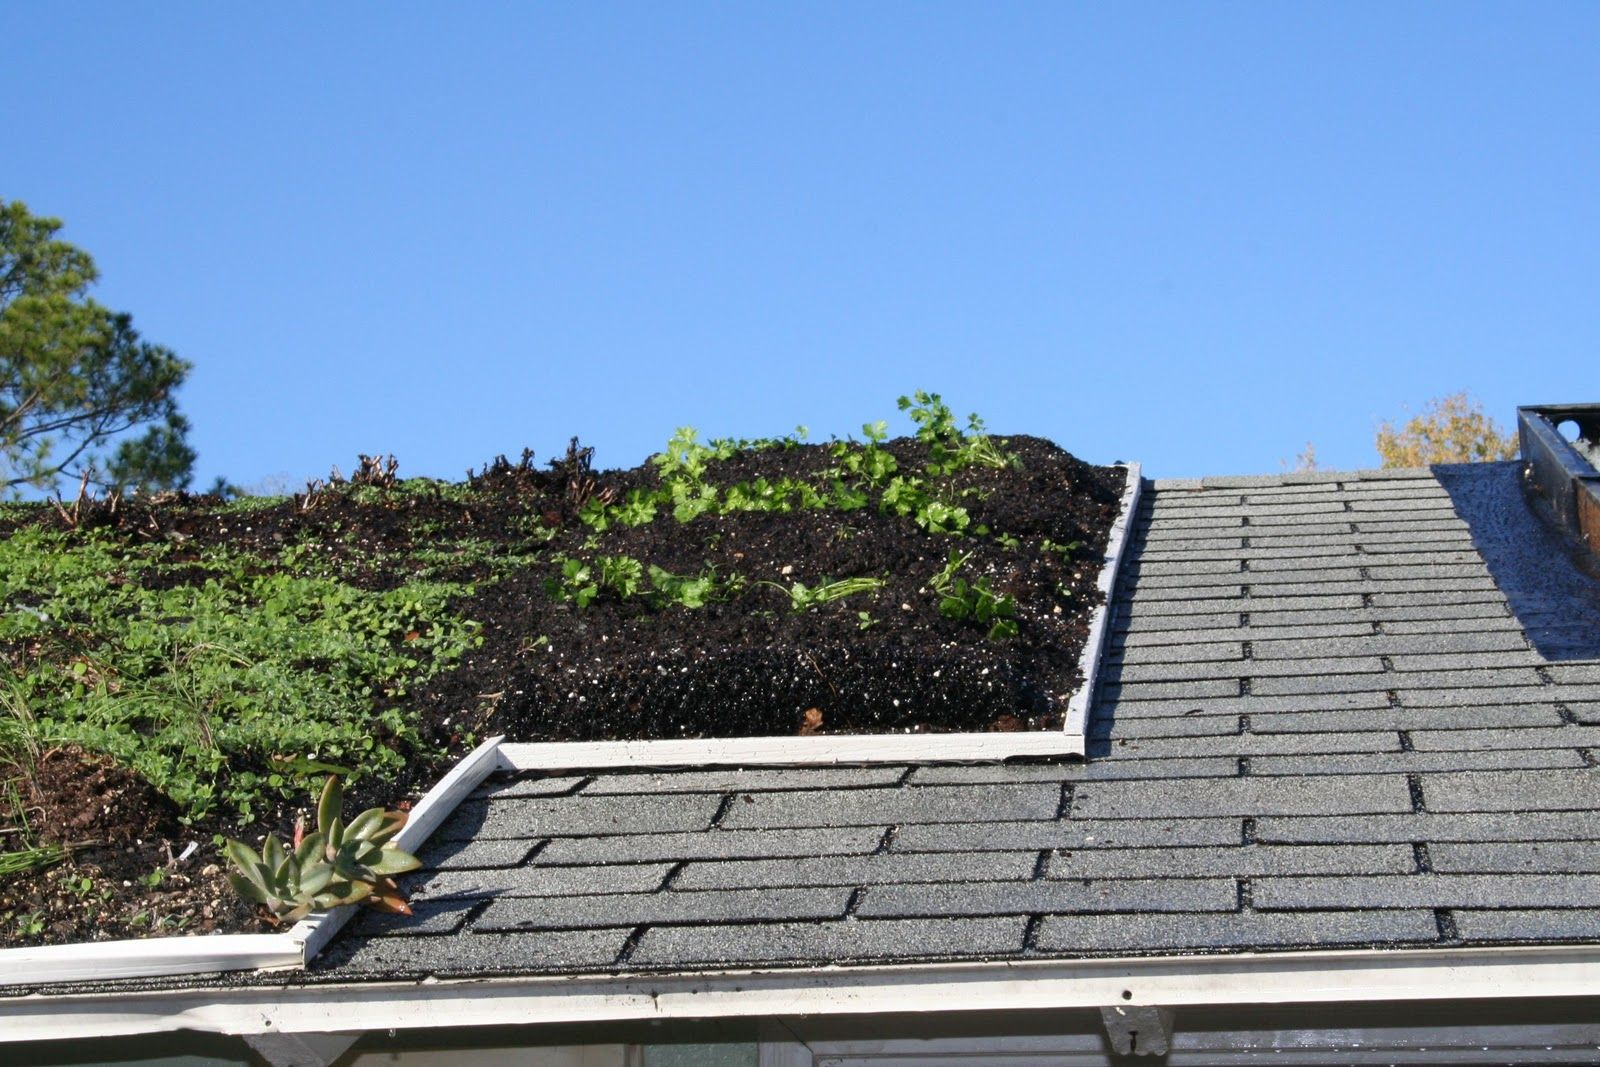 Rooftop Garden On Slanted Roof Google Search Rooftop Garden Urban Rooftop Garden Urban Garden